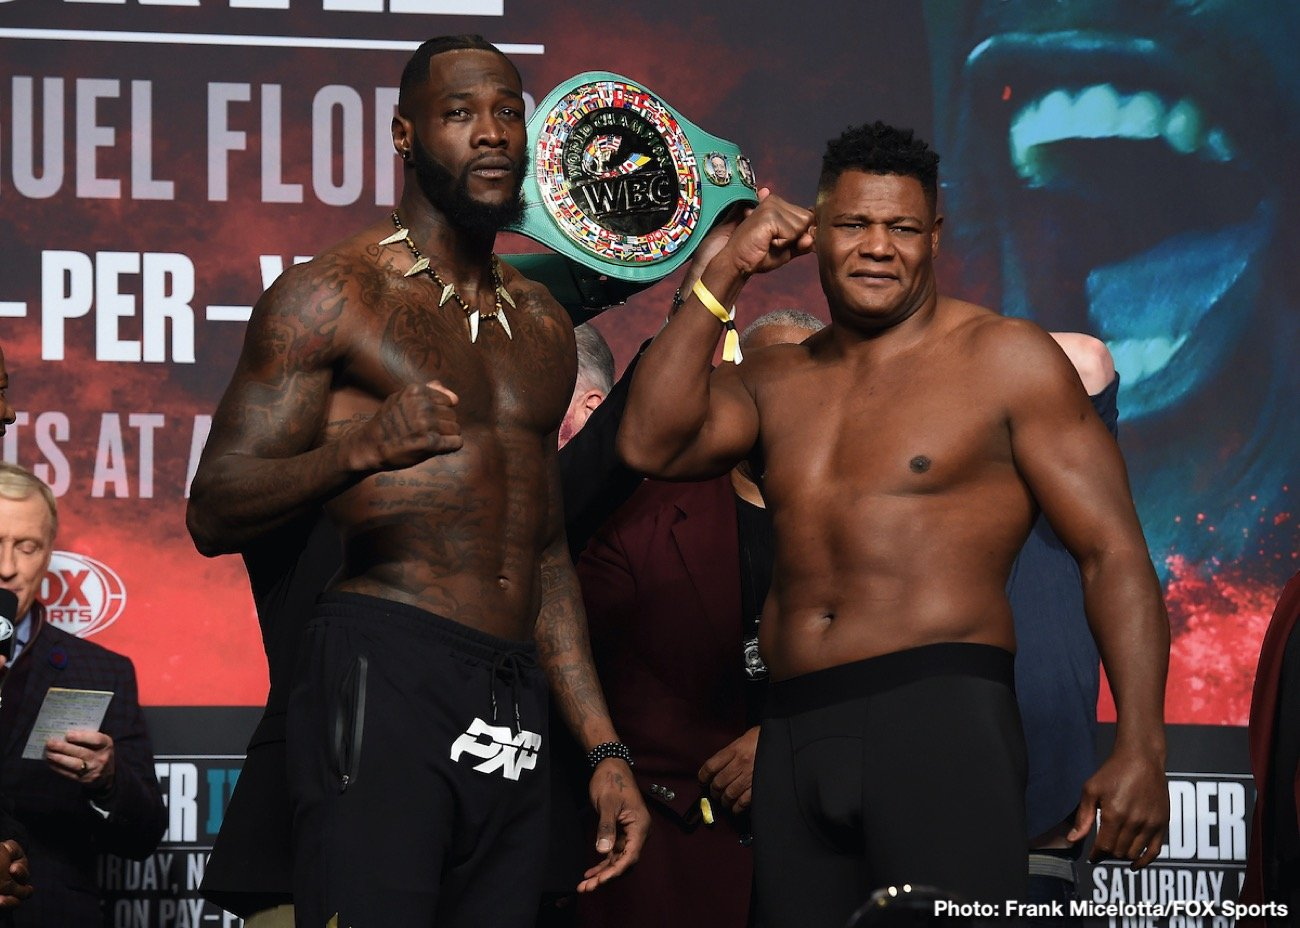 Luis 'King Kong' Ortiz came in at 236.5 lbs and looked in best shape in years for his title challenge against WBC heavyweight champion Deontay Wilder. Ortiz will have 17-lb weight advantage over Wilder (41-0-1, 40 KOs), who weighed in at 219.5 lbs.